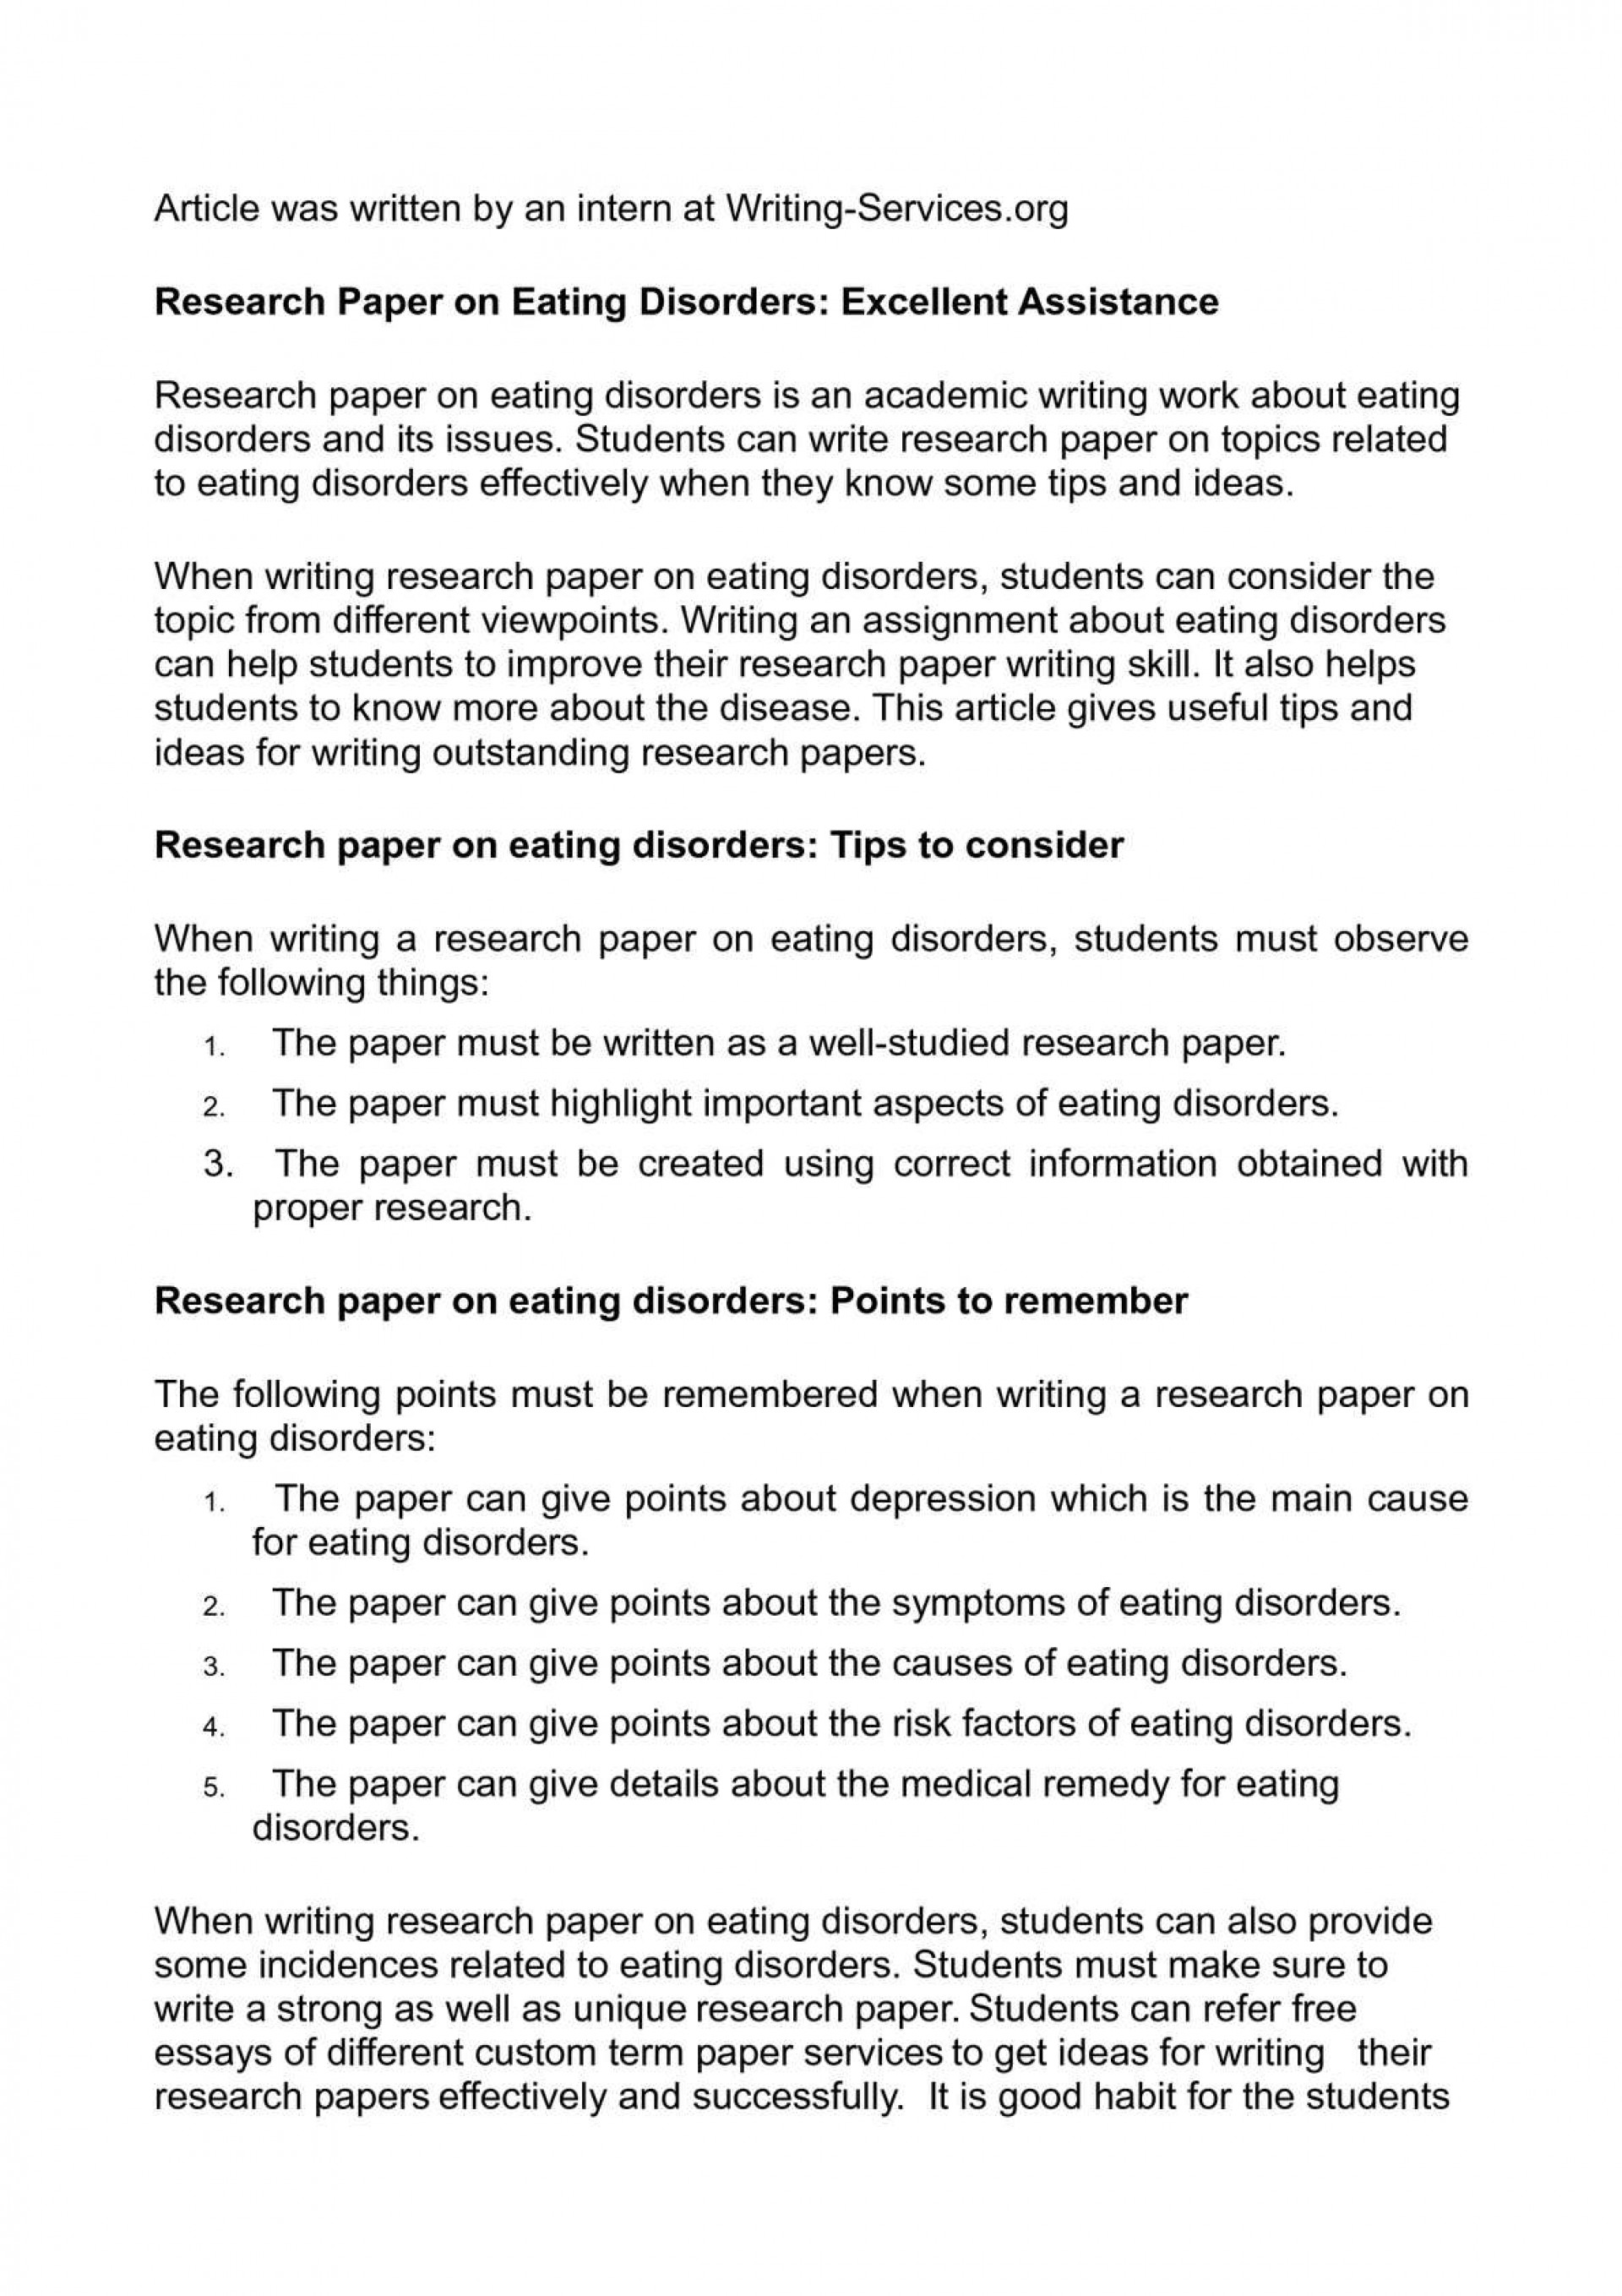 001 P1 Research Paper On Eating Wonderful Disorders Topics Articles And The Media 1920